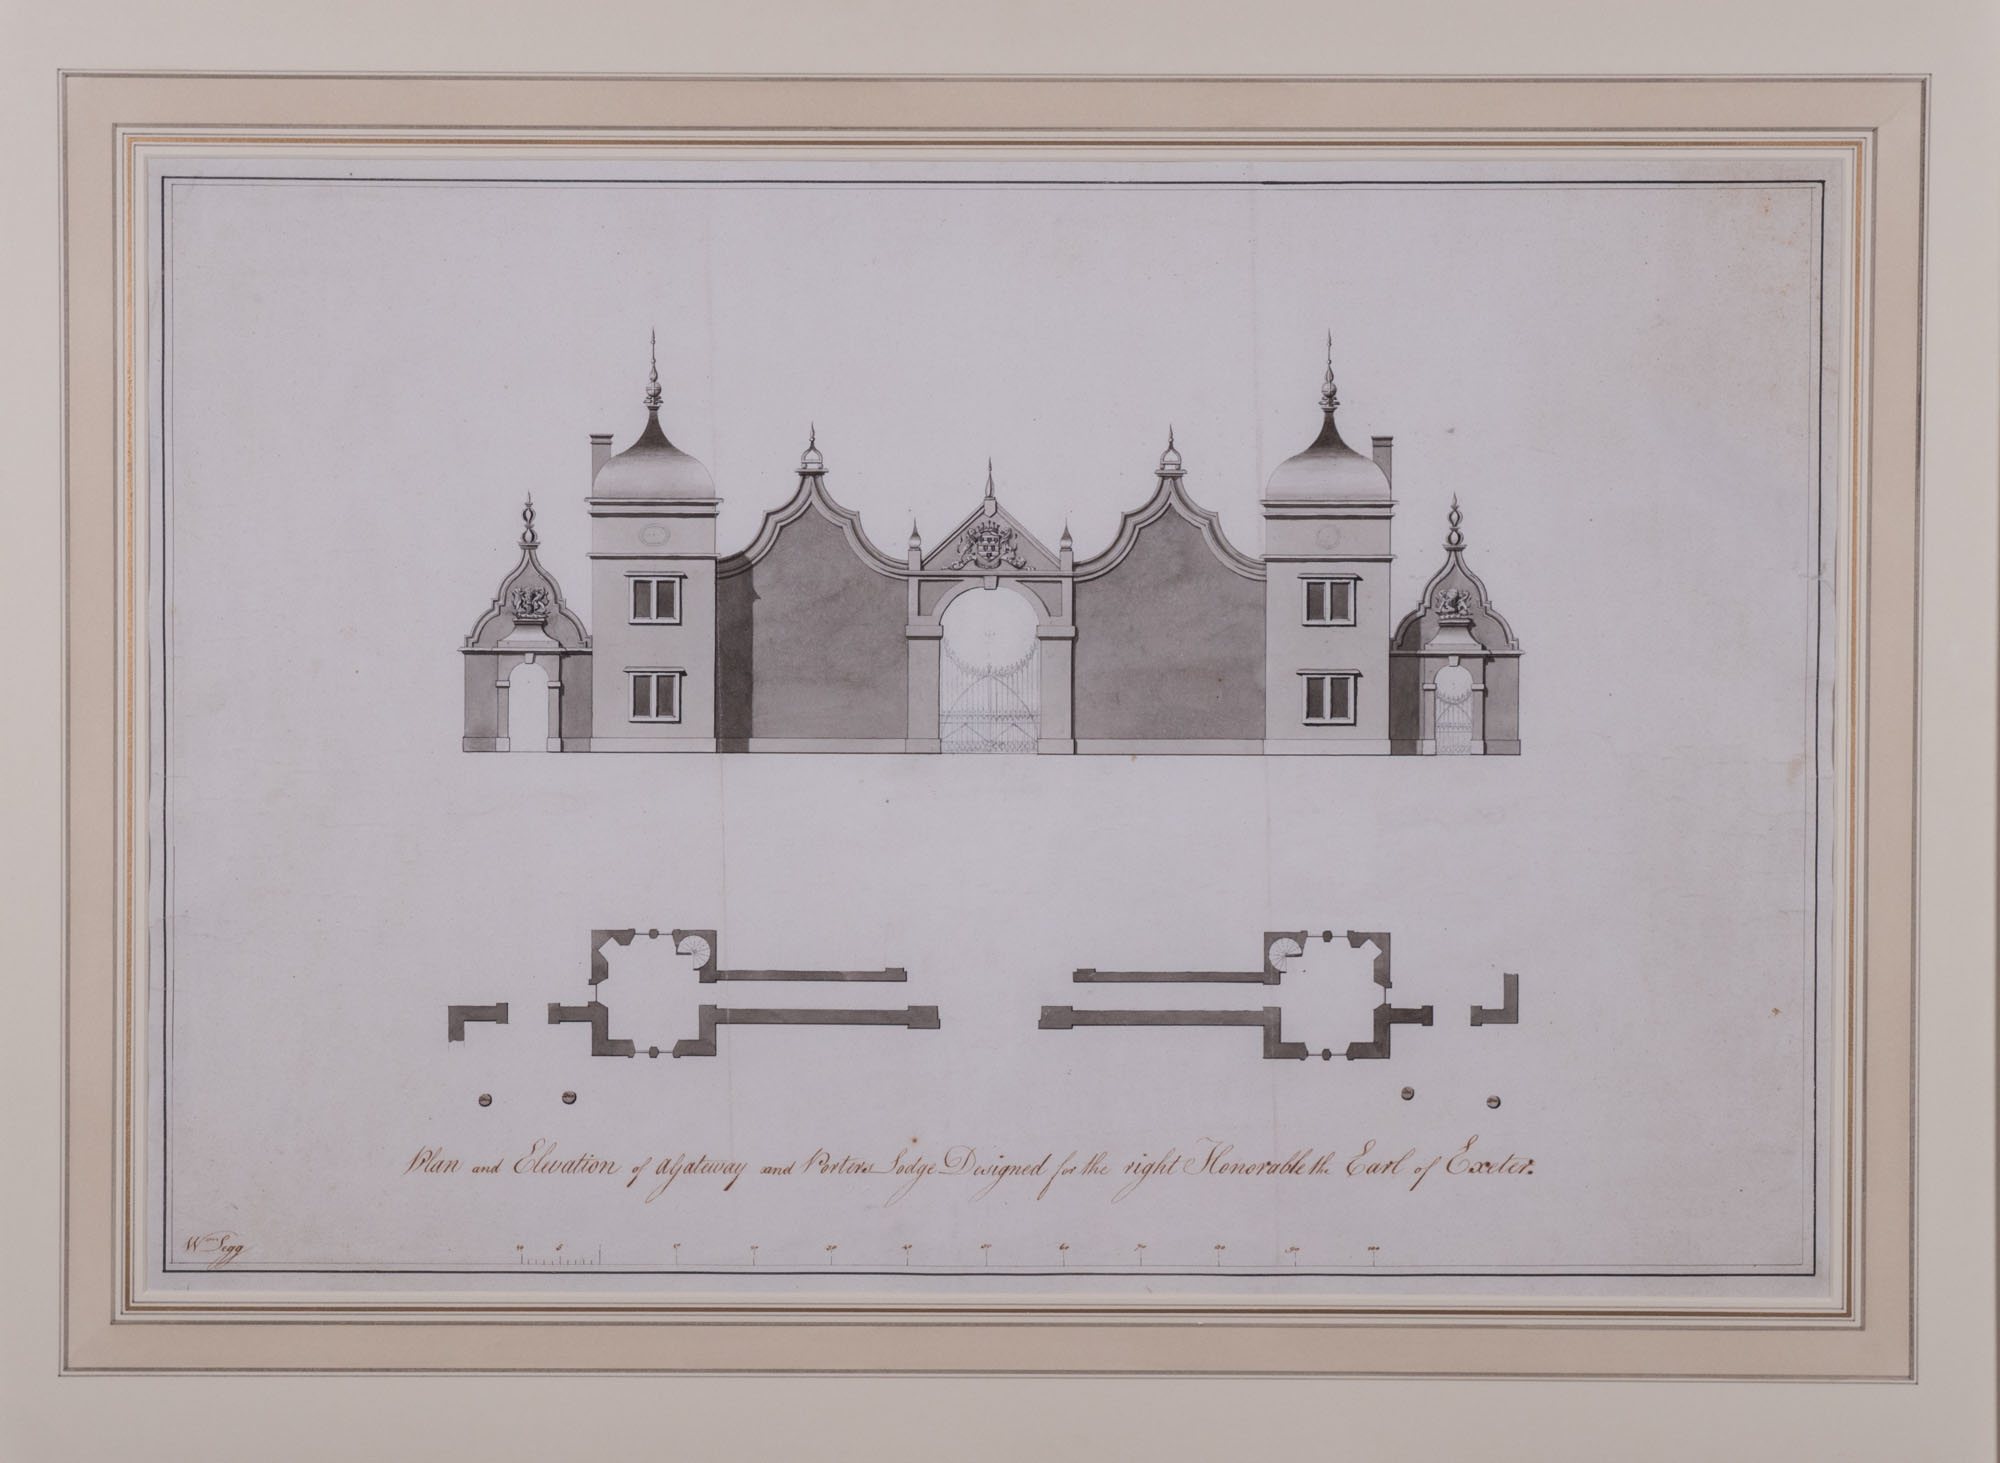 Plan and elevation of a Gateway and the Bottle Lodges at Burghley, by William Daniel Legg (d. 1806).